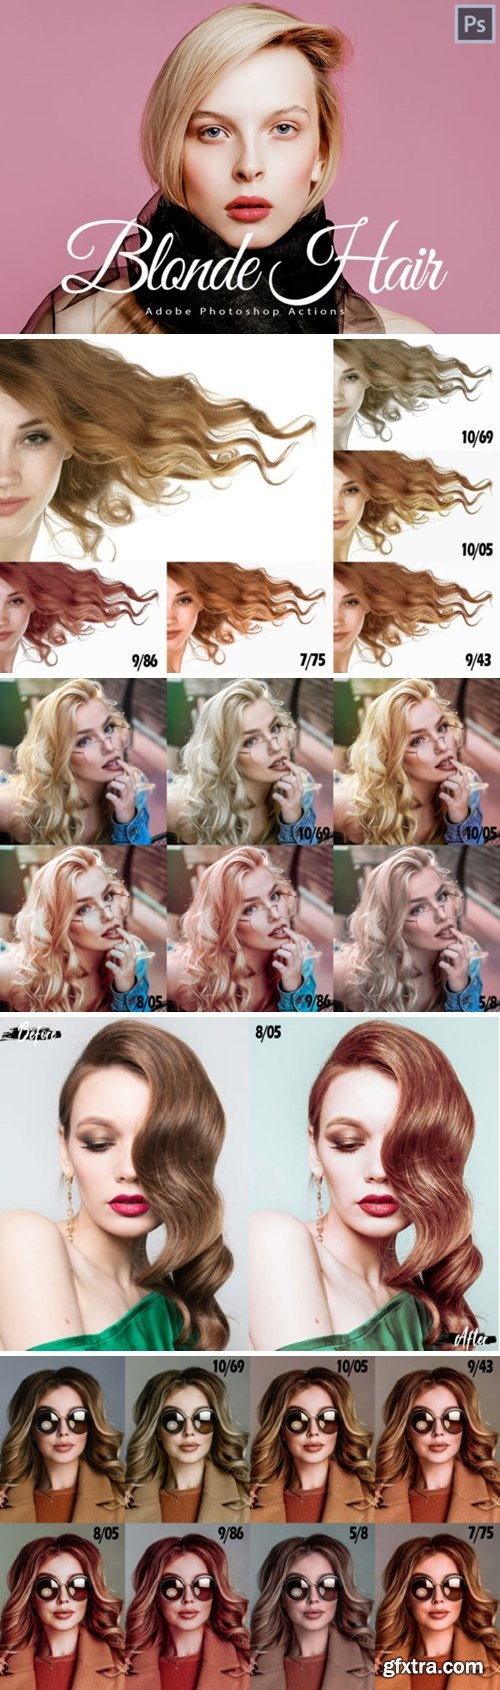 14 Blonde Hair Photoshop Actions 1706244